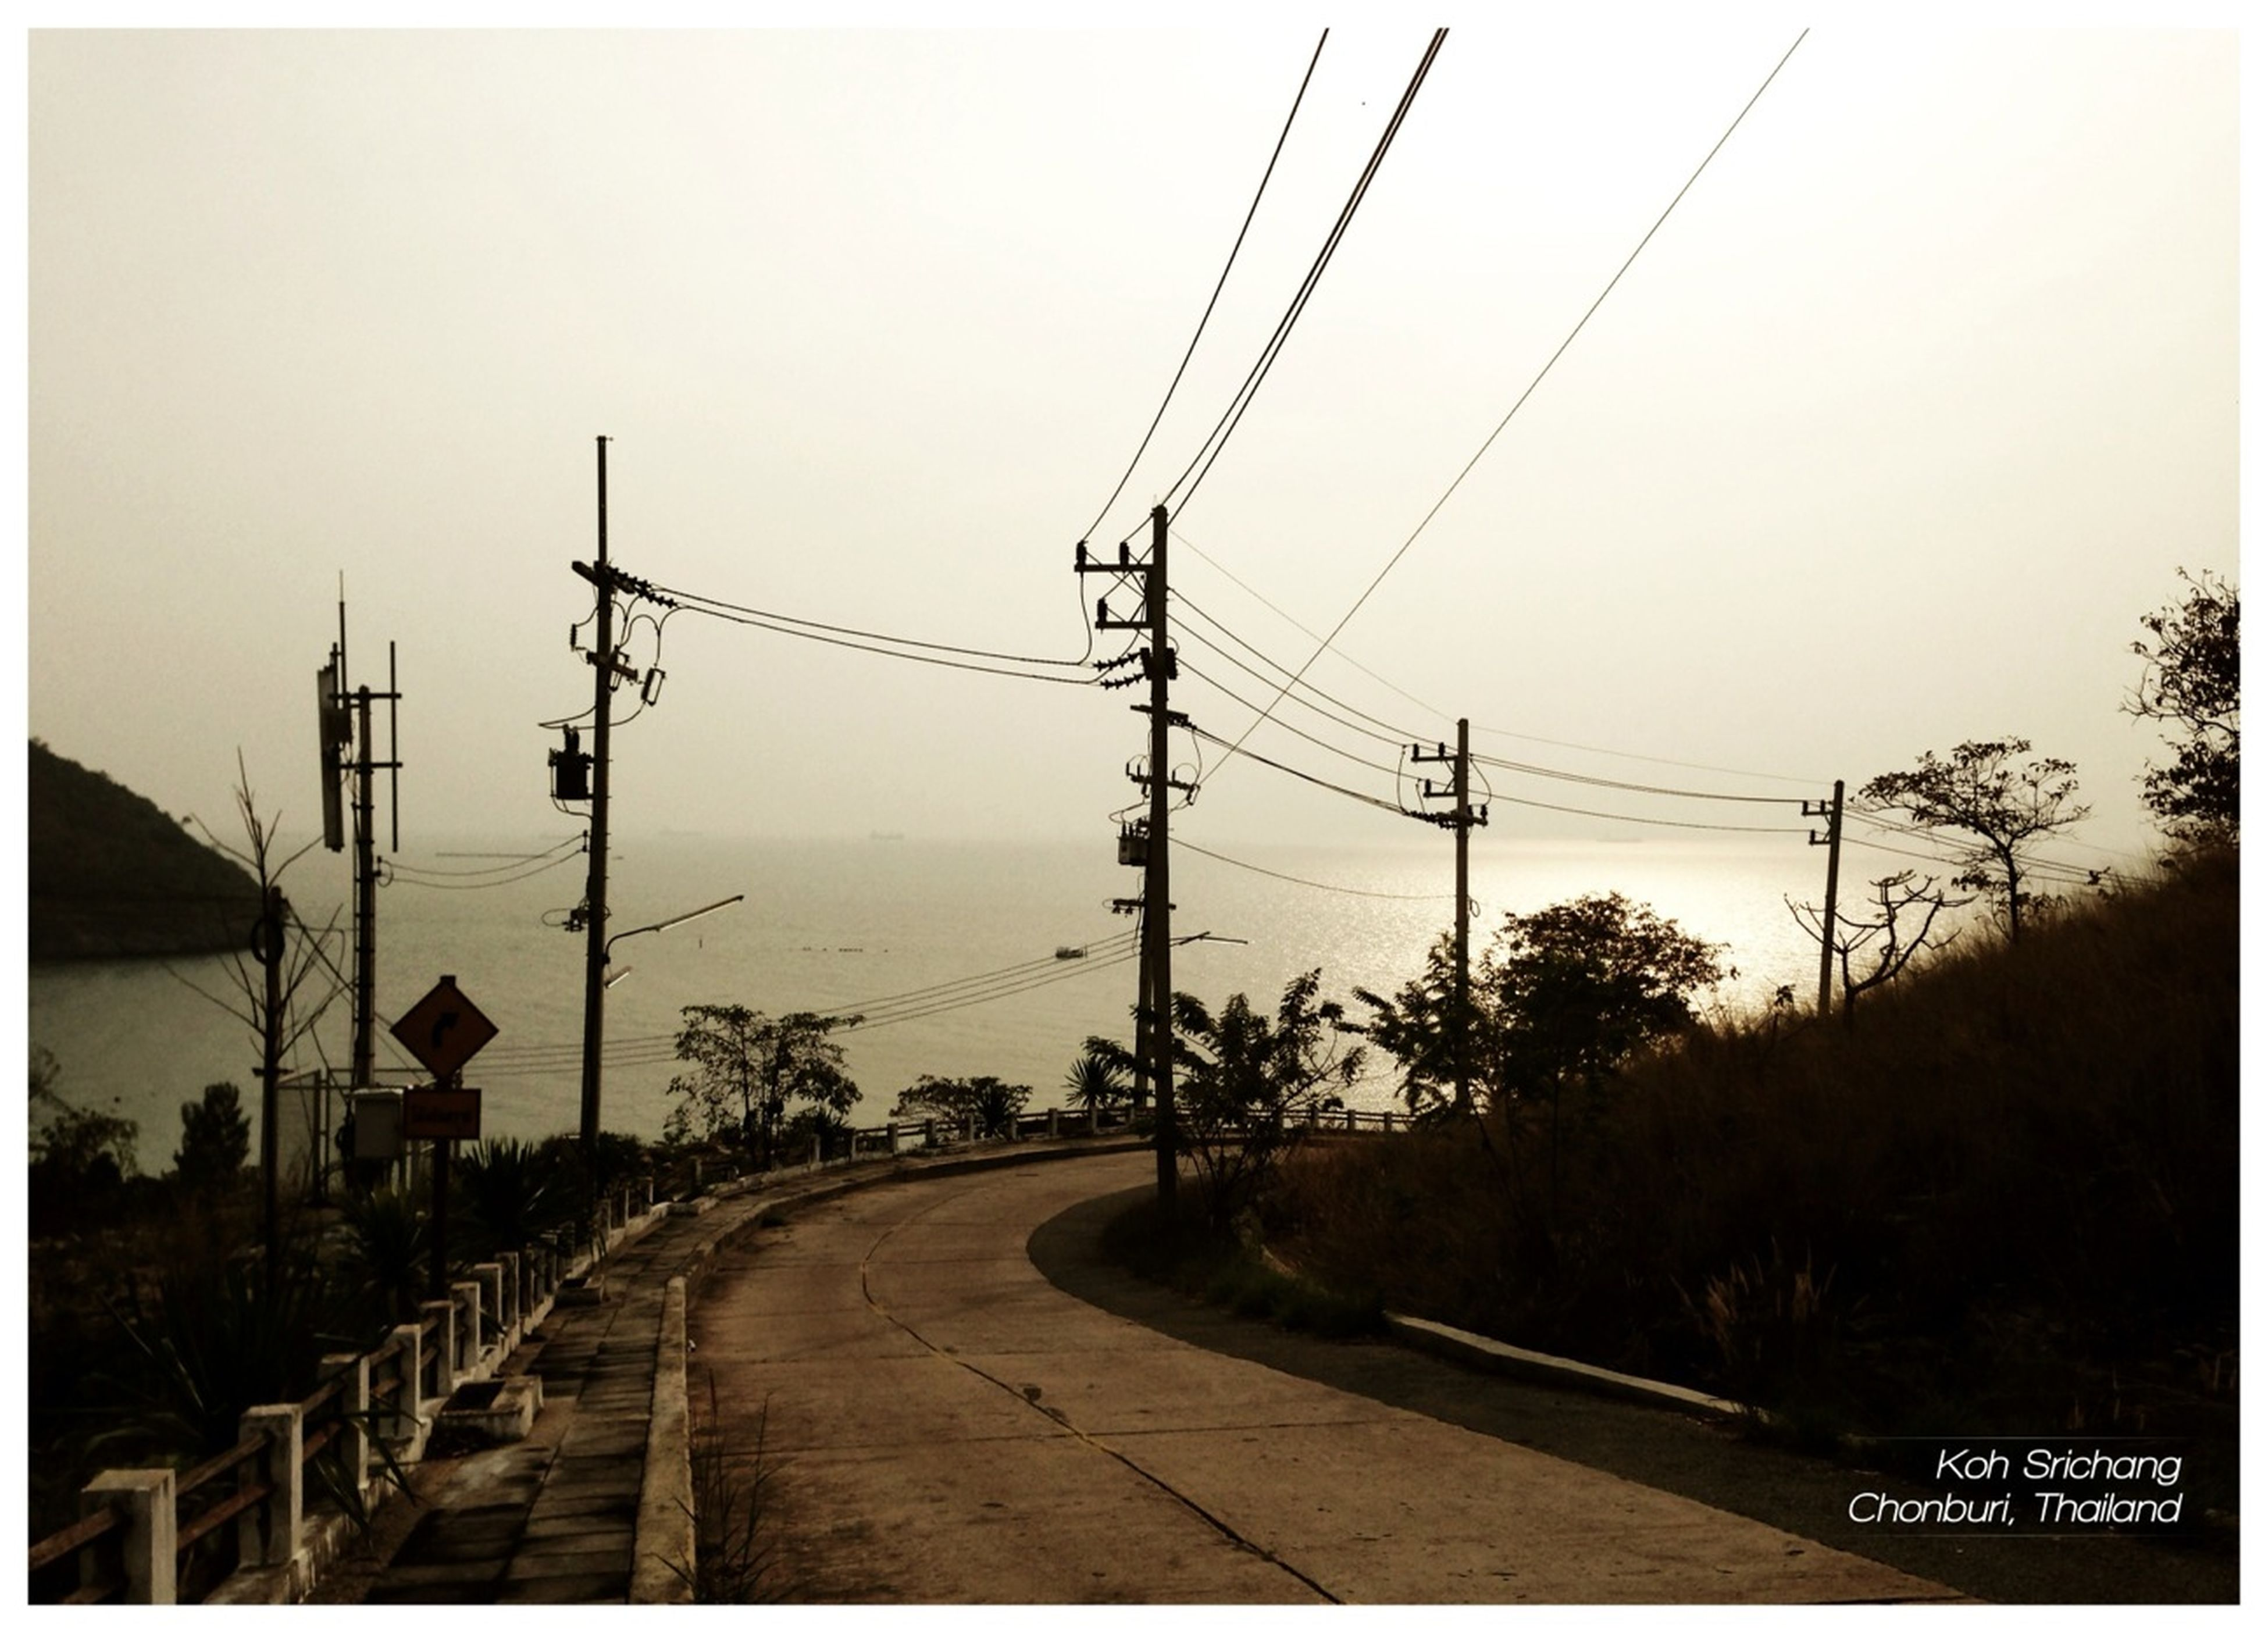 power line, electricity pylon, transfer print, transportation, electricity, power supply, the way forward, clear sky, connection, cable, road, auto post production filter, sky, fuel and power generation, diminishing perspective, power cable, street light, street, railroad track, tree